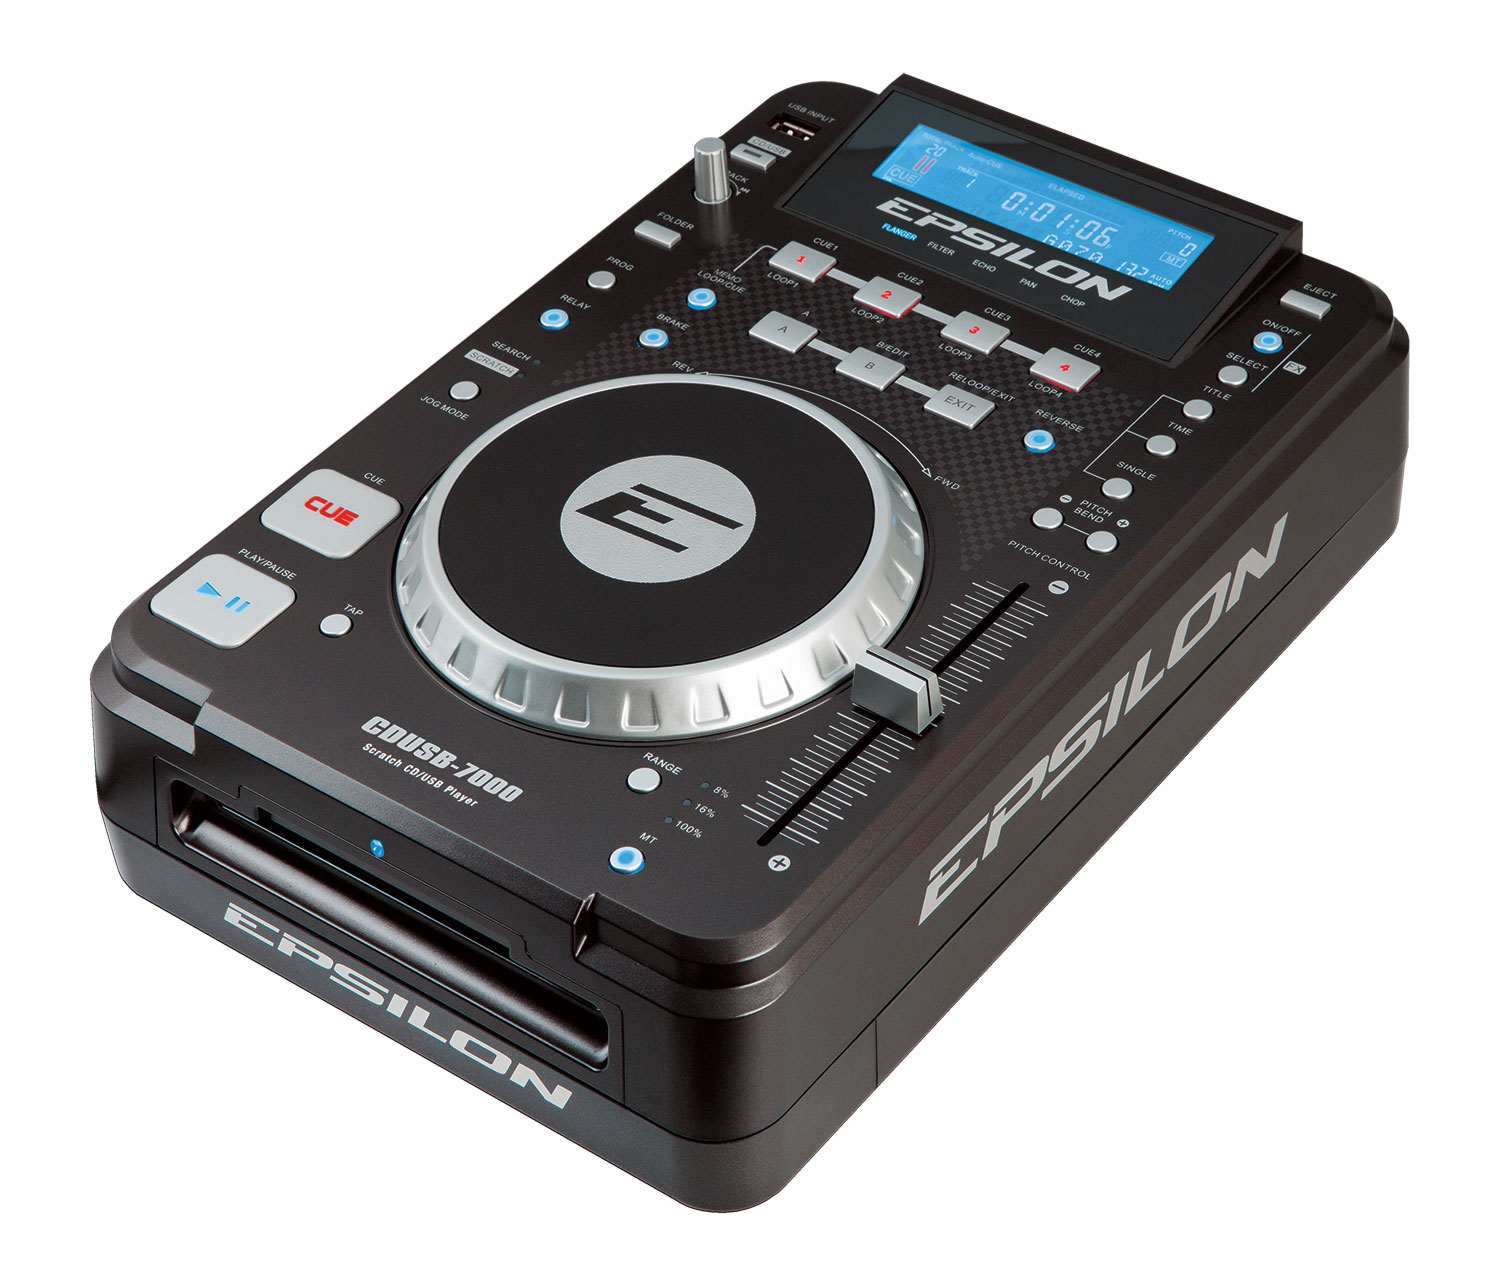 Epsilon Pro - CD Players - CDUSB-7000